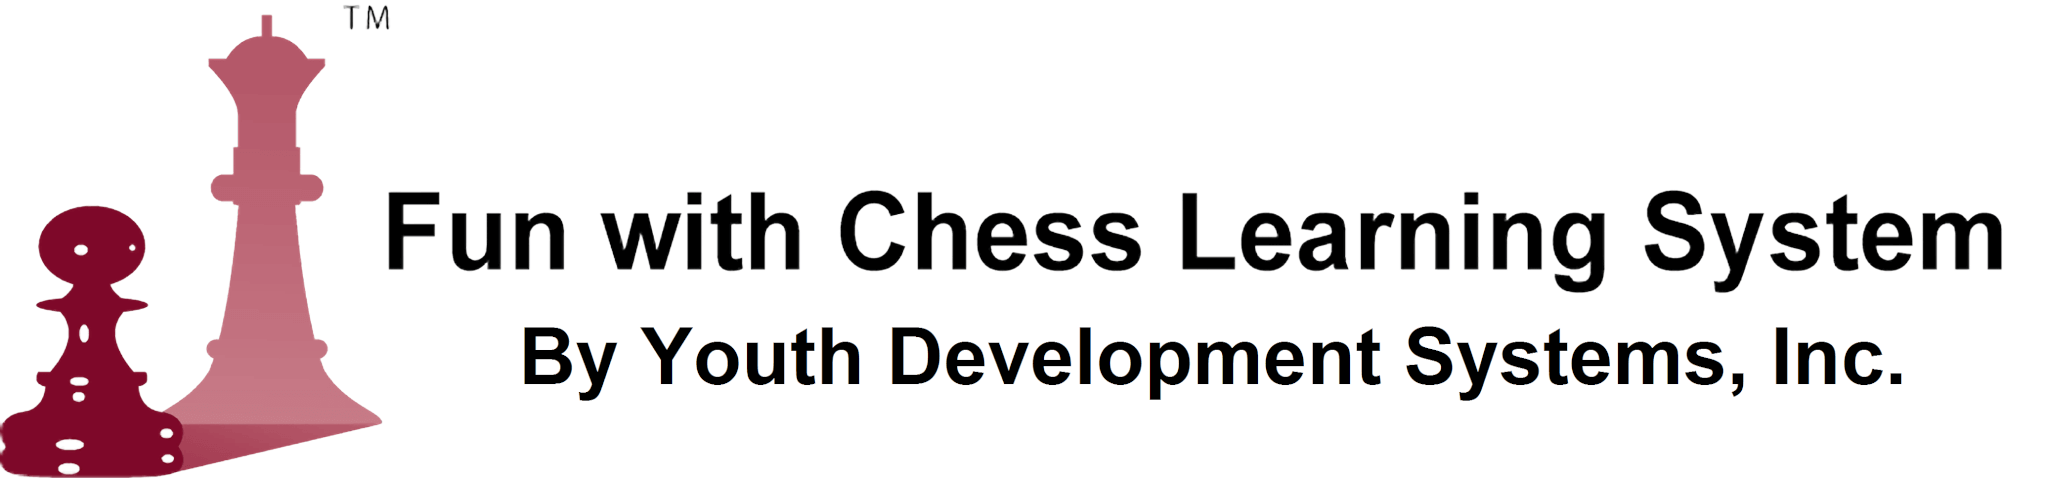 http://www.funwithchess.com/yds-news/